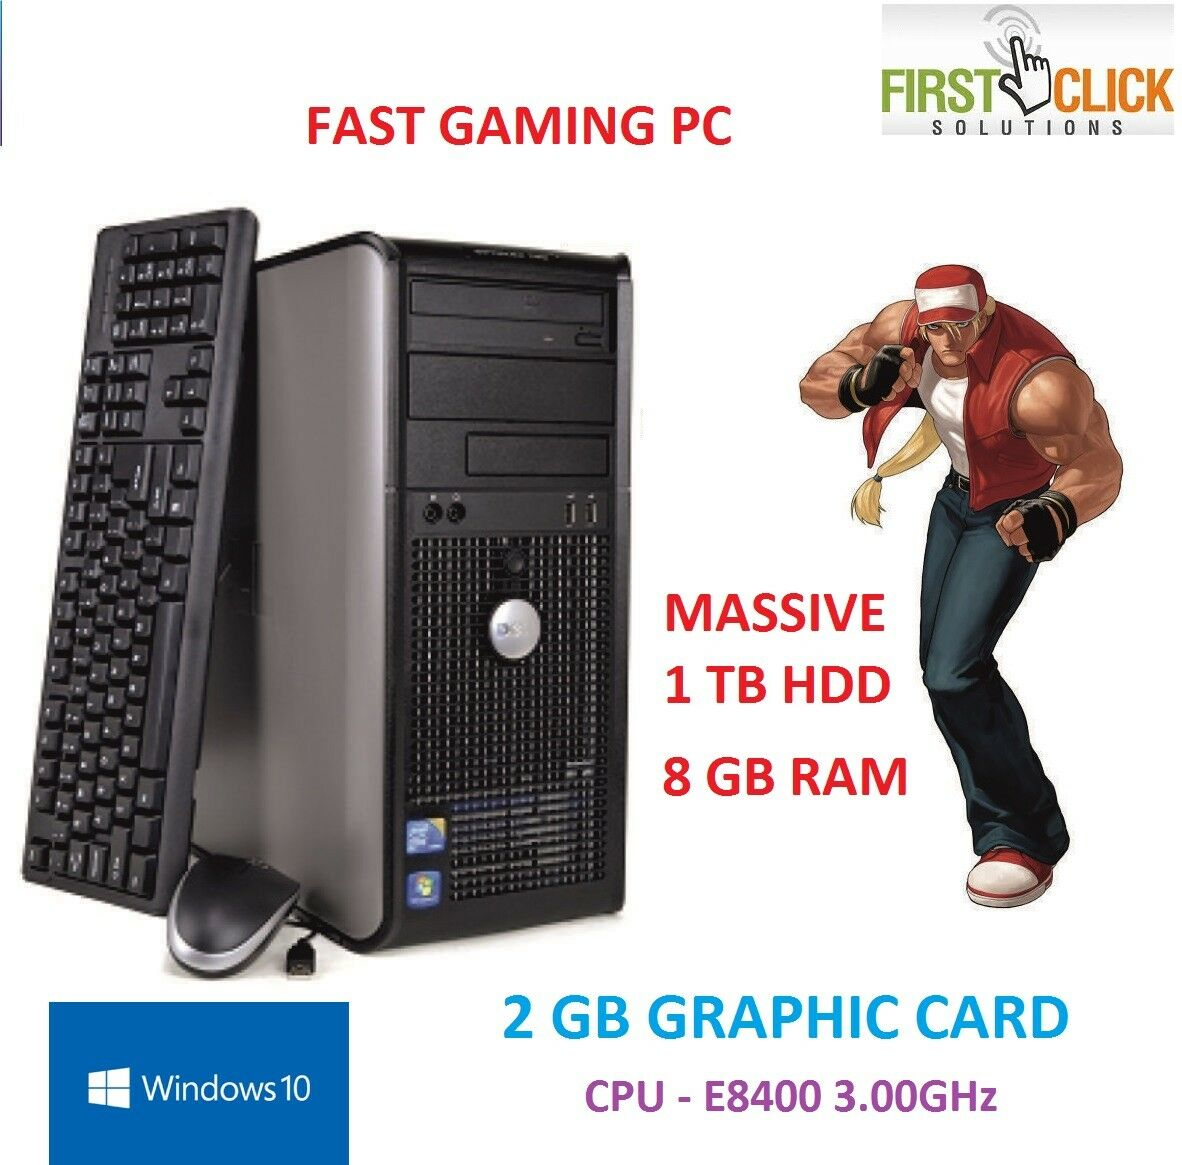 Computer Games - FAST WINDOWS 10 GAMING COMPUTER PC INTEL CORE 2 DUO E8400 @ 3.00GHz 8GB 1TB HDD